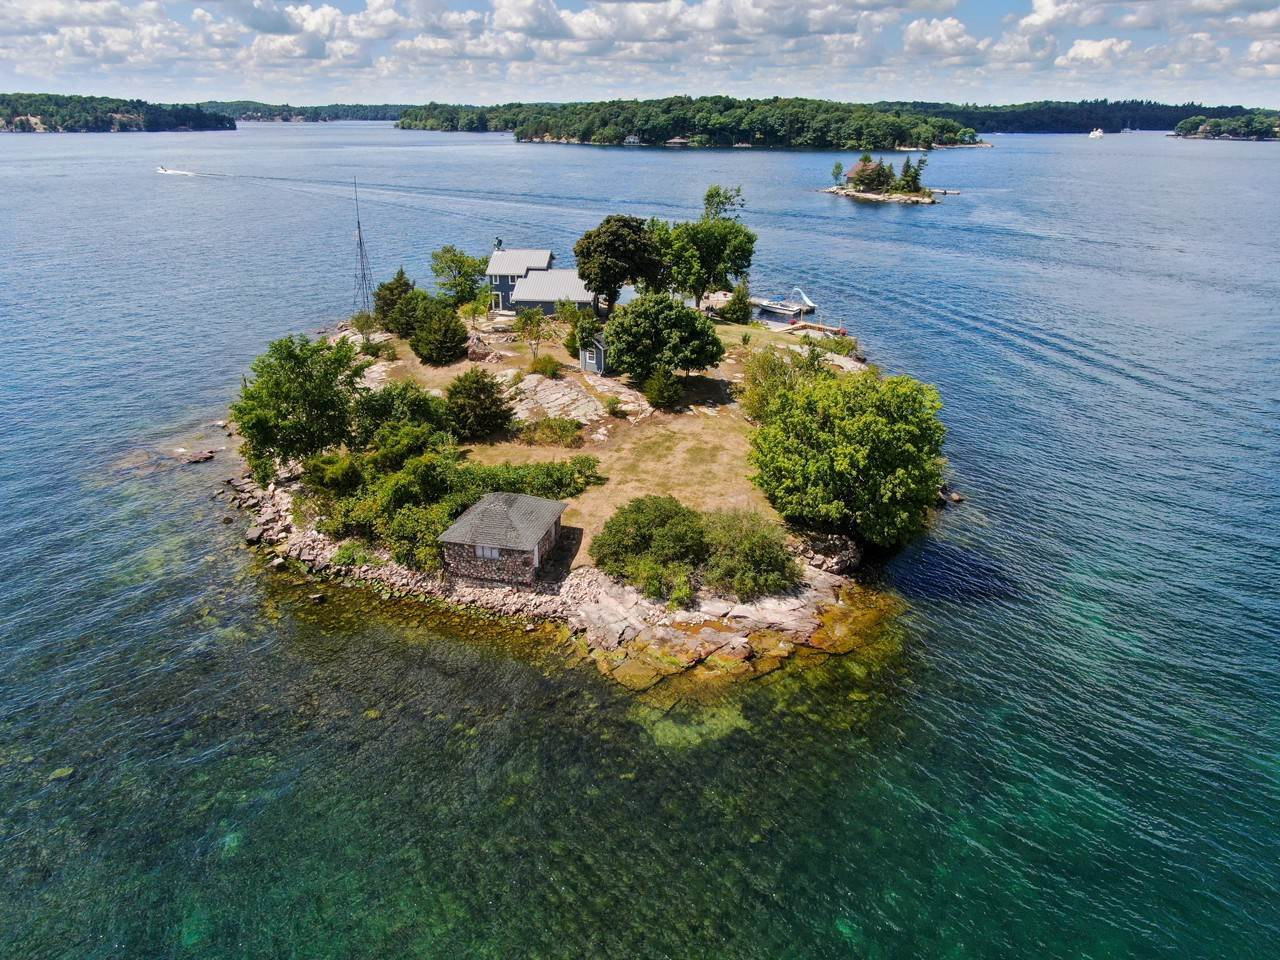 Private Islands for Sale at Woronoco Island in the 1000 Islands 41884 Woronoco Island Clayton, New York 13624 United States